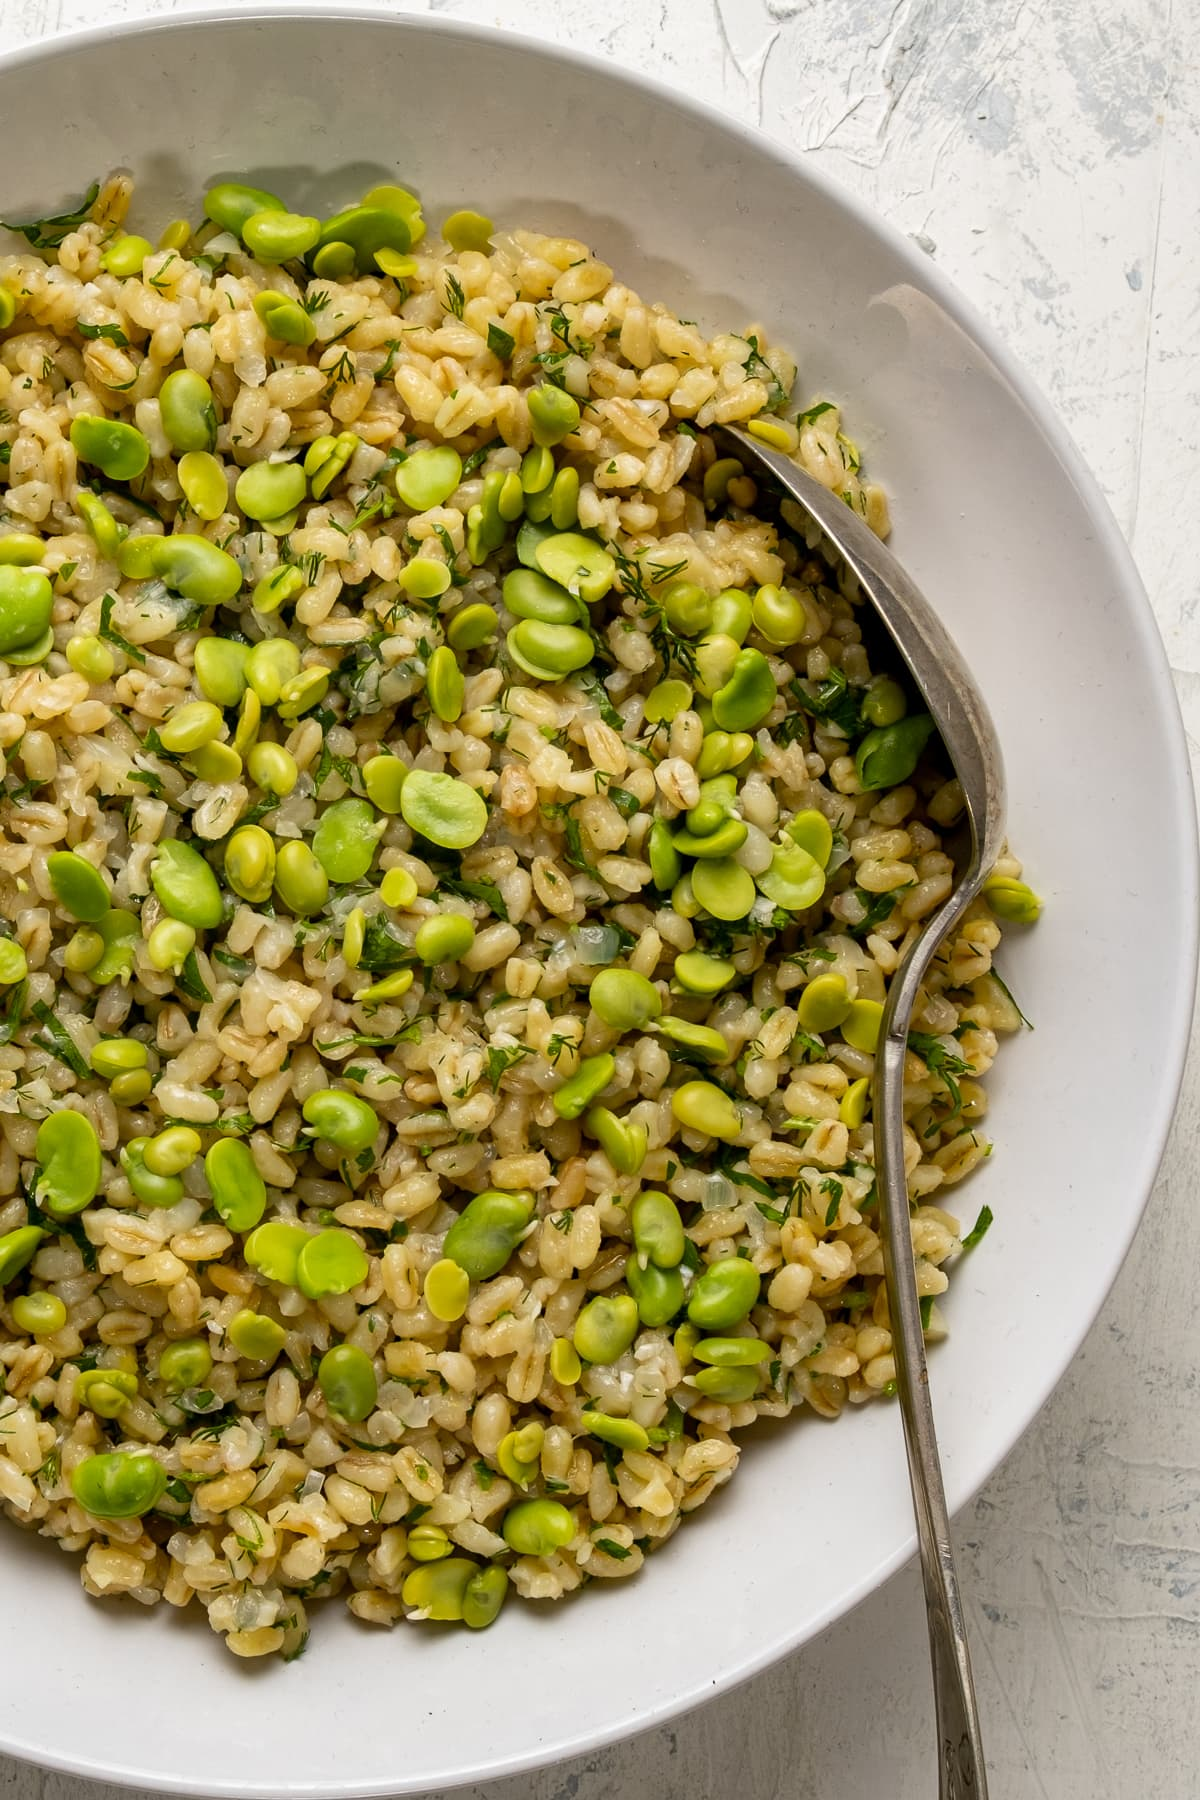 Bulgur pilaf with fava beans in a white bowl and a spoon inside it.